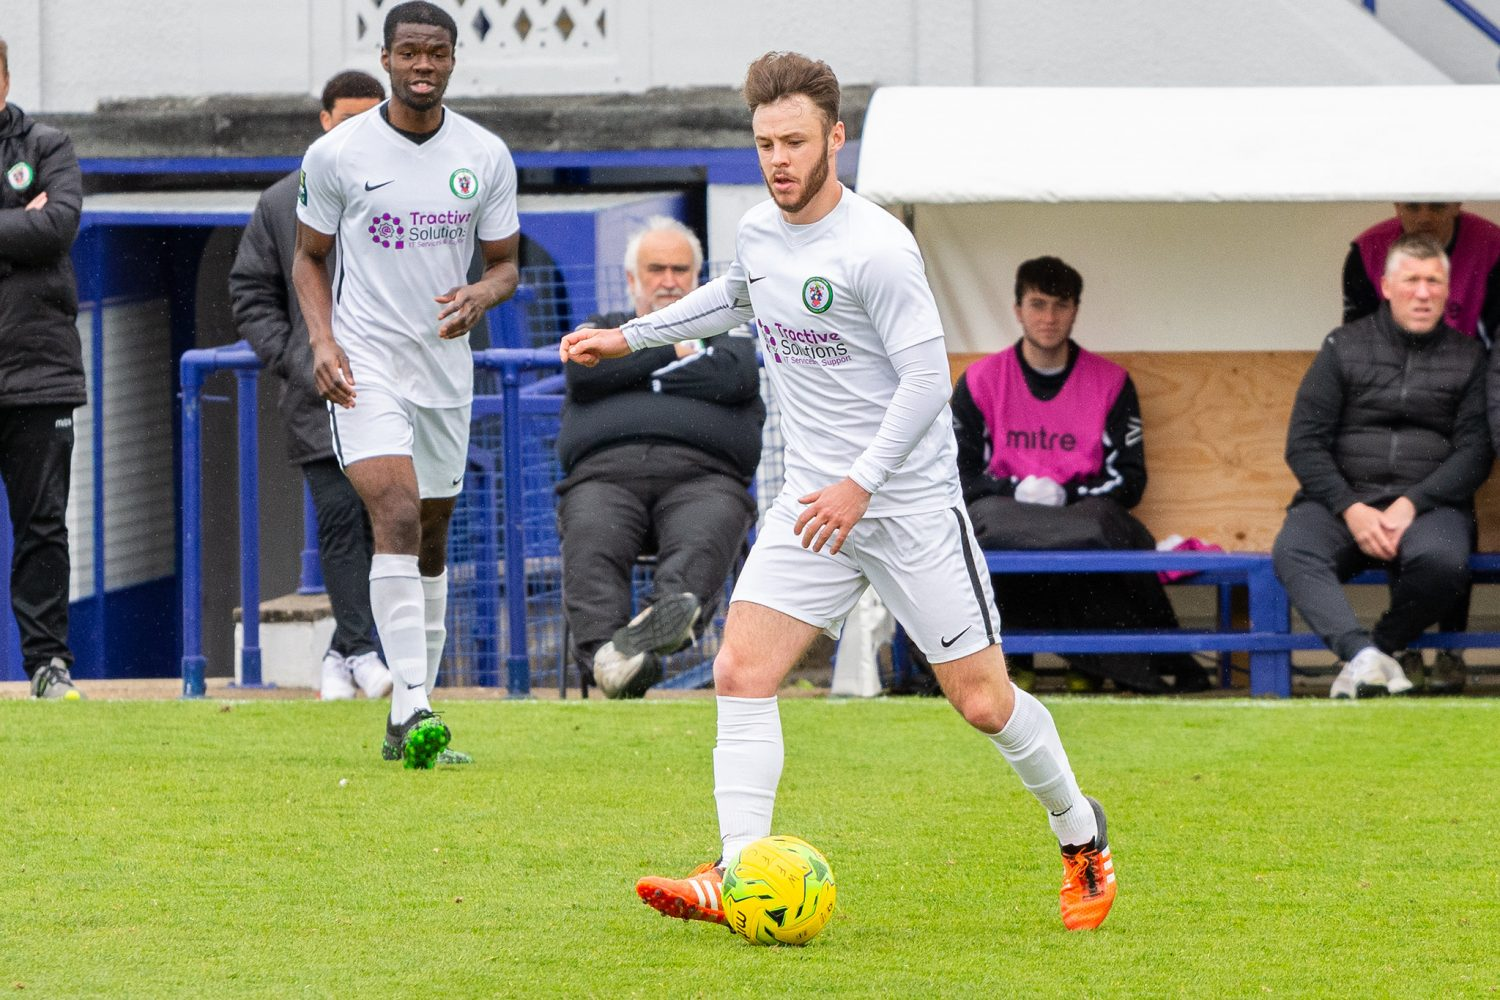 Gallery: Wingate & Finchley (A)